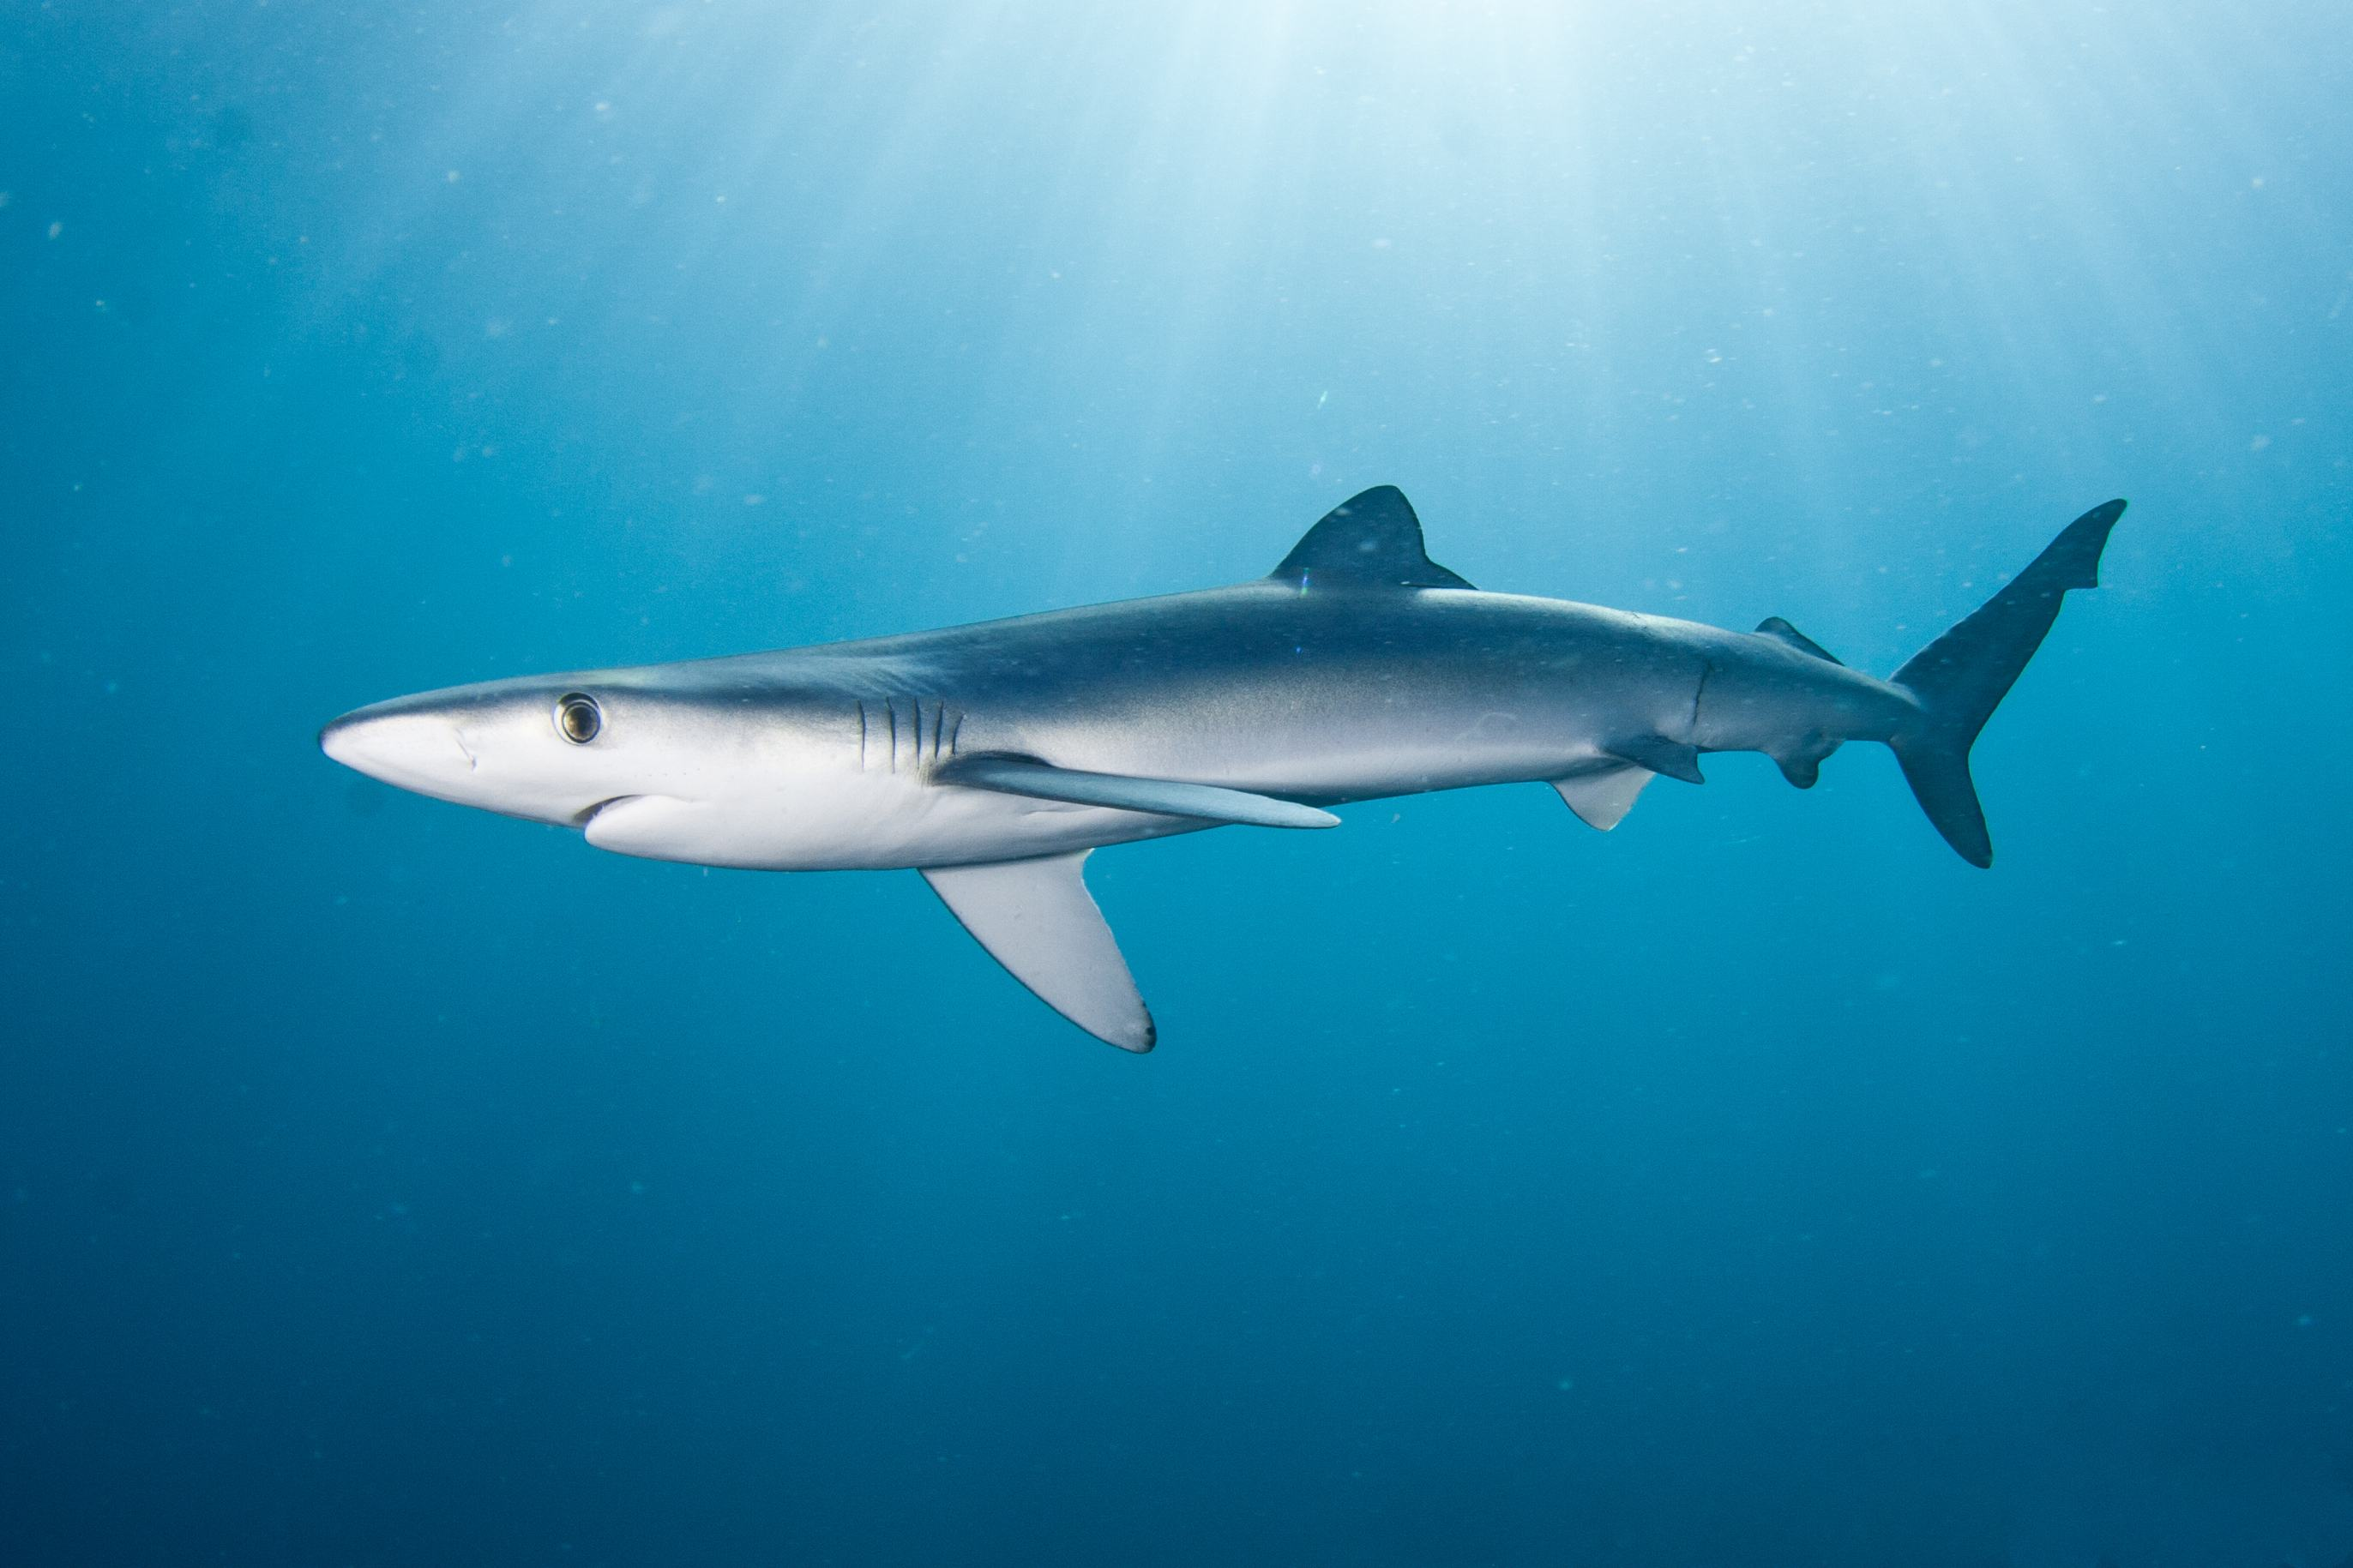 Download Free Live Shark Wallpaper Gallery